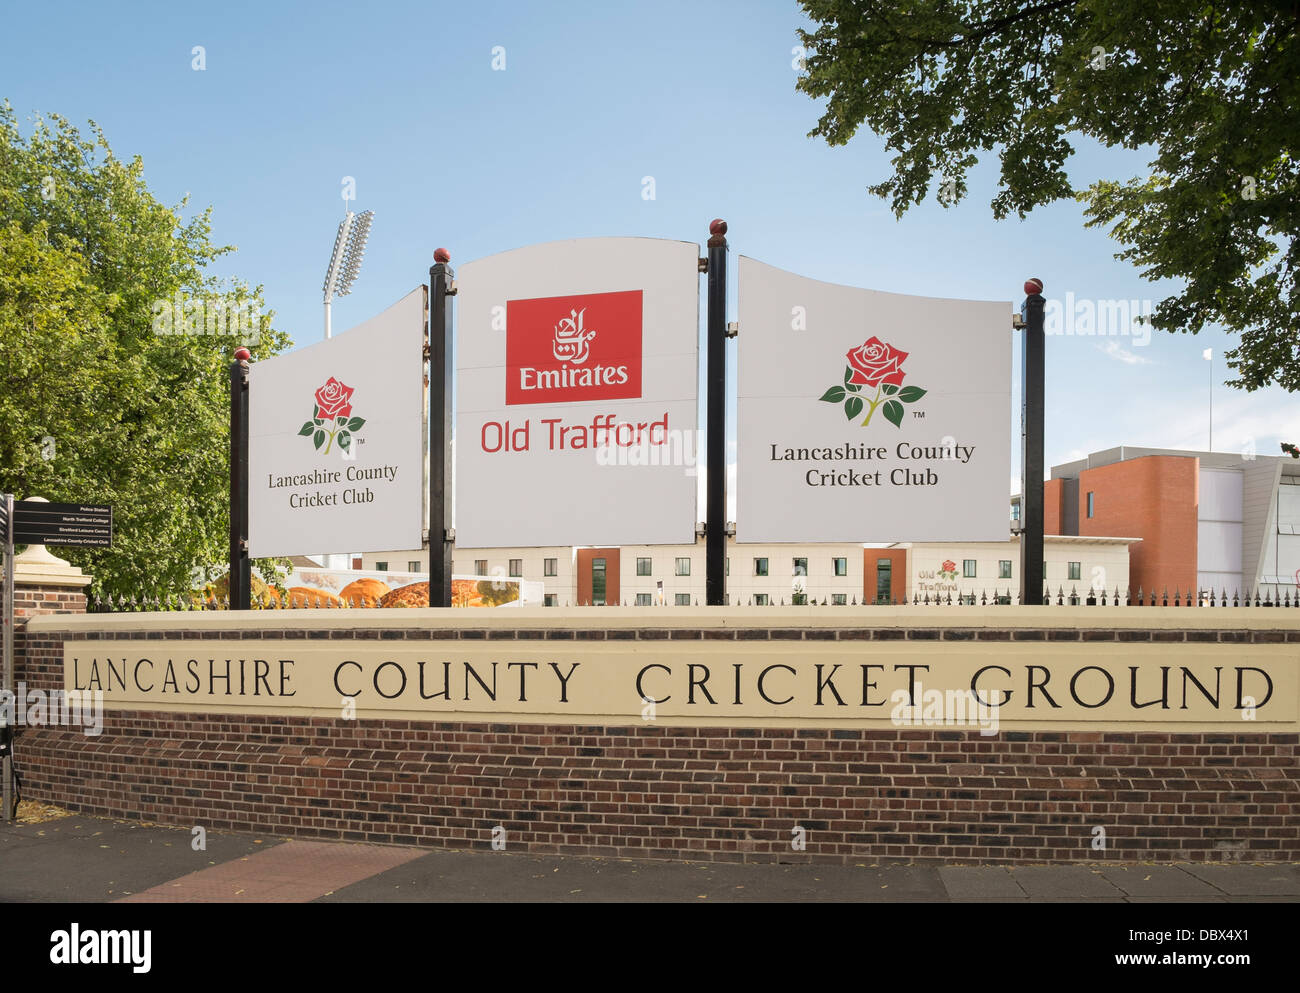 Sign for Emirates Old Trafford at Lancashire County Cricket Ground in Manchester, Lancashire, England, UK, Britain - Stock Image